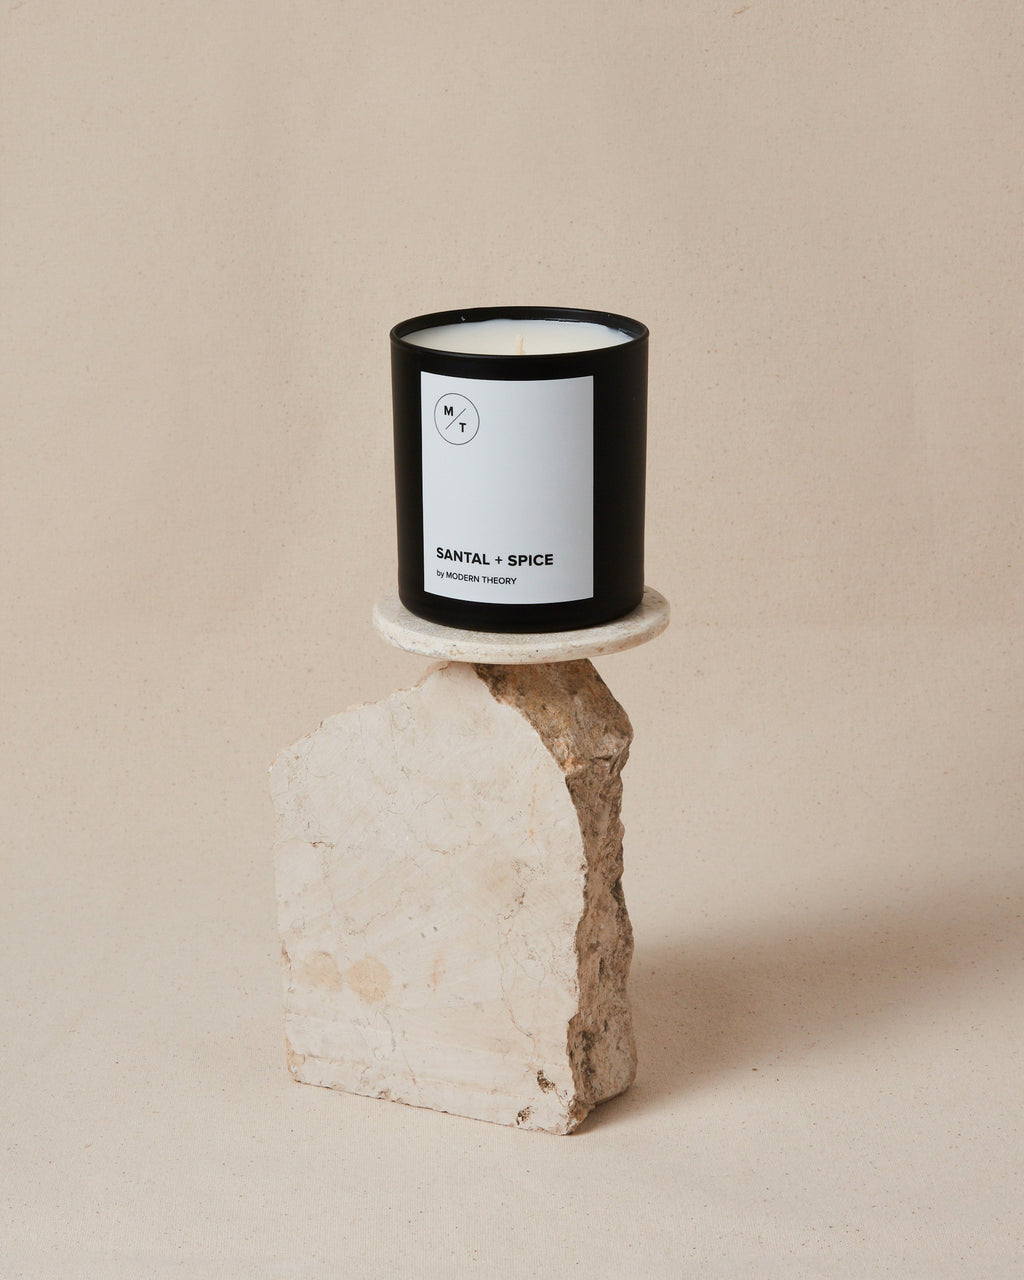 Santal + Spice Coconut Blend Wax Candle - SunCoastSea